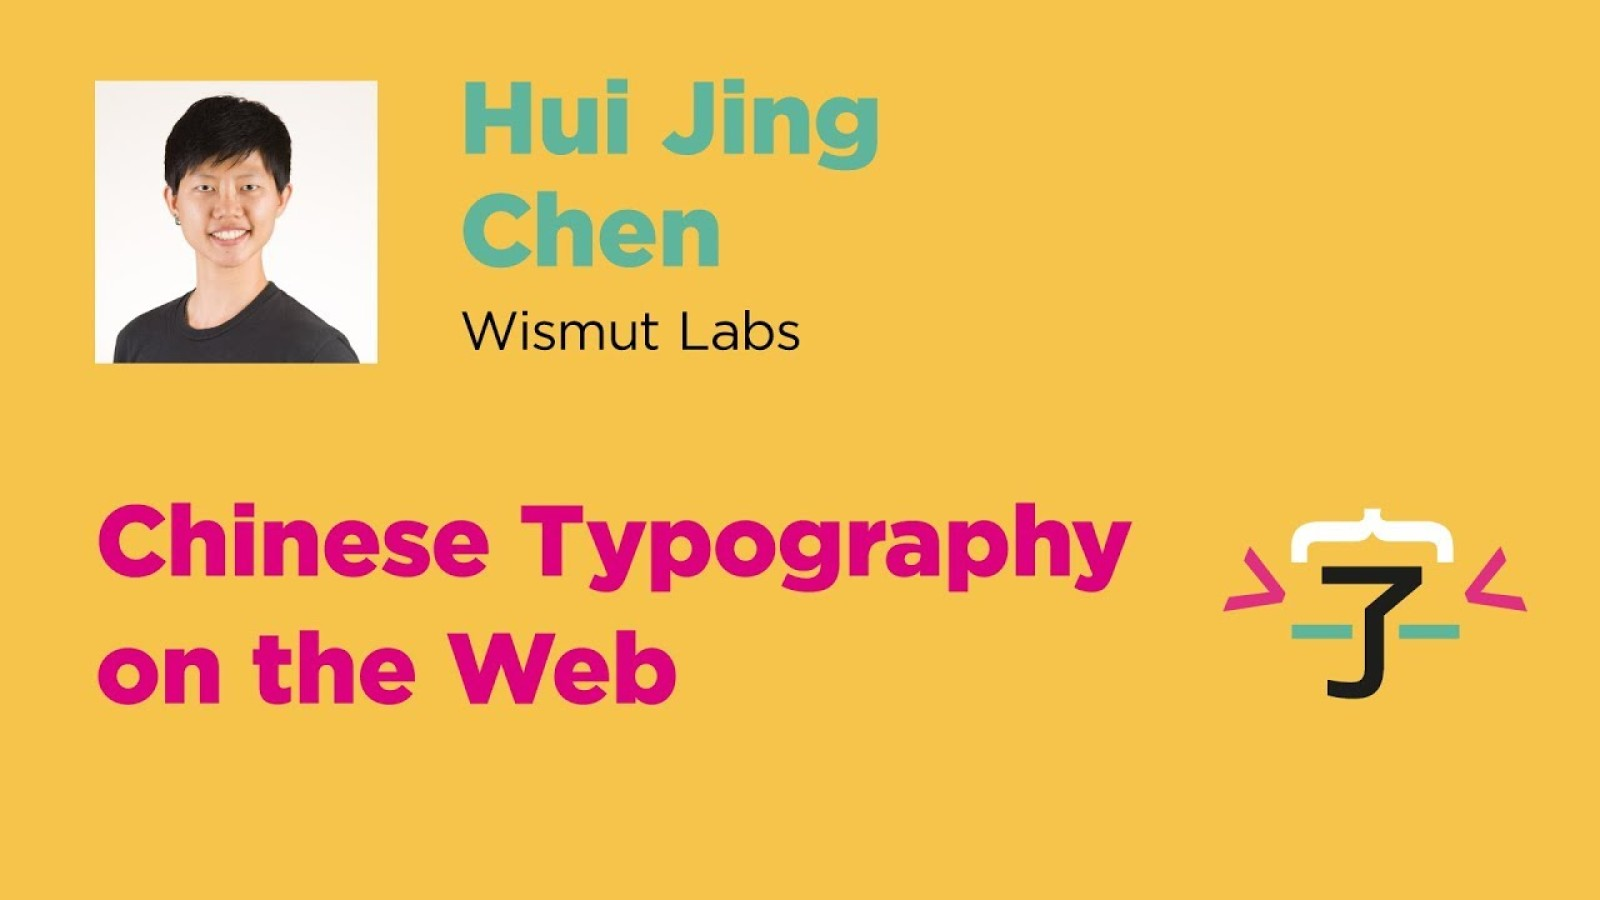 Chinese typography on the web